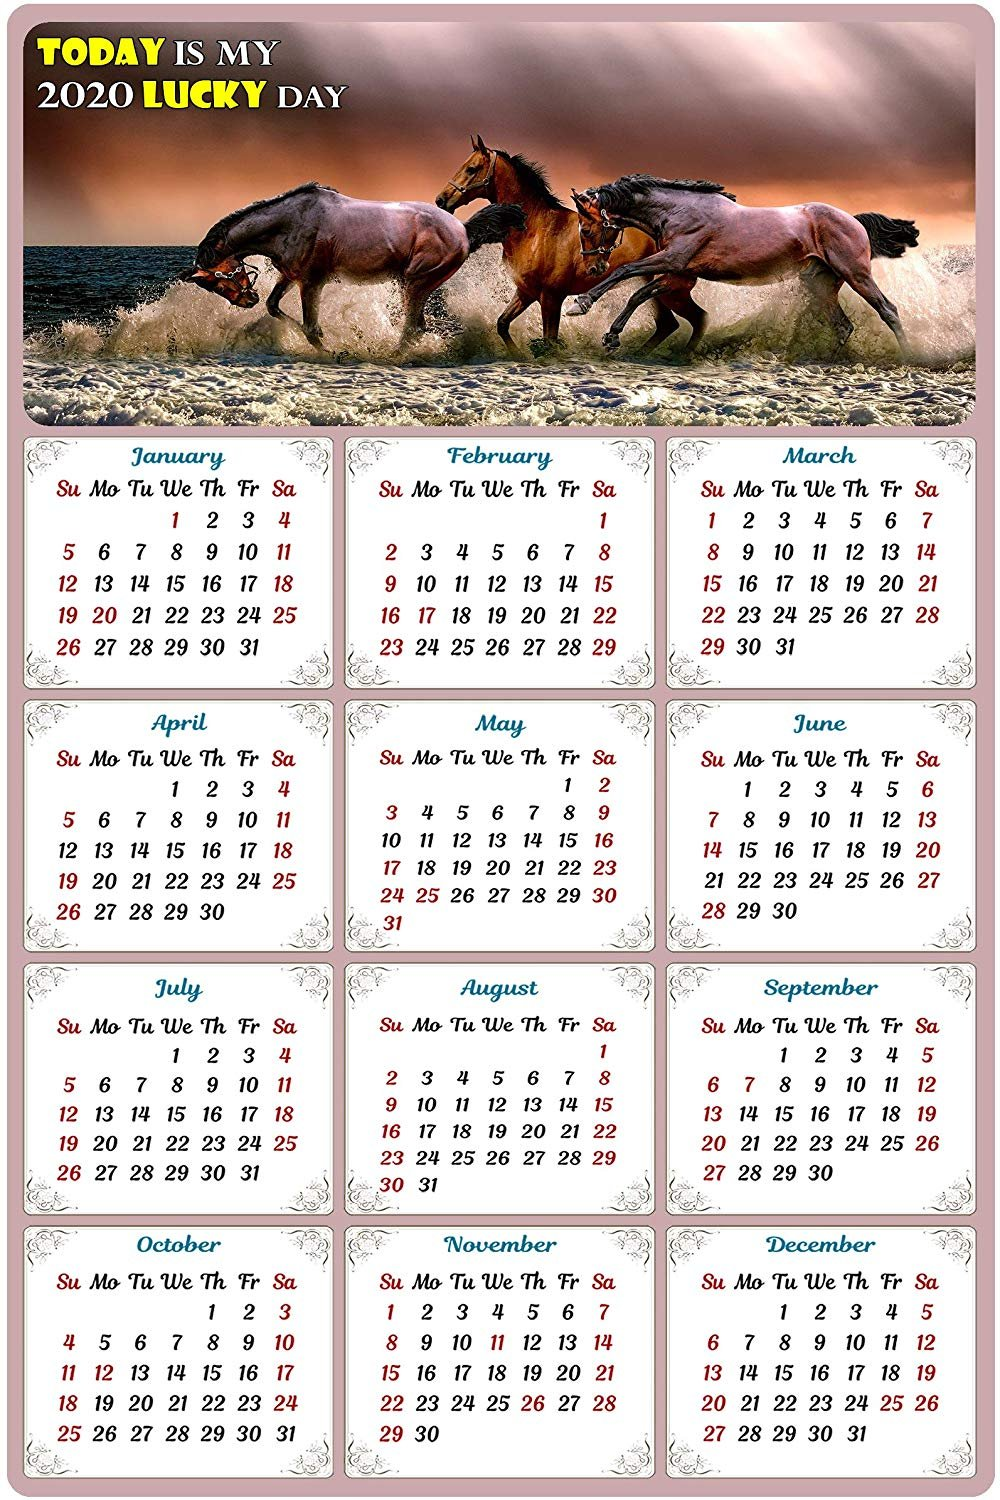 2020 Magnetic Calendar - Calendar Magnets - Today is My Lucky Day - Horses Edition #001